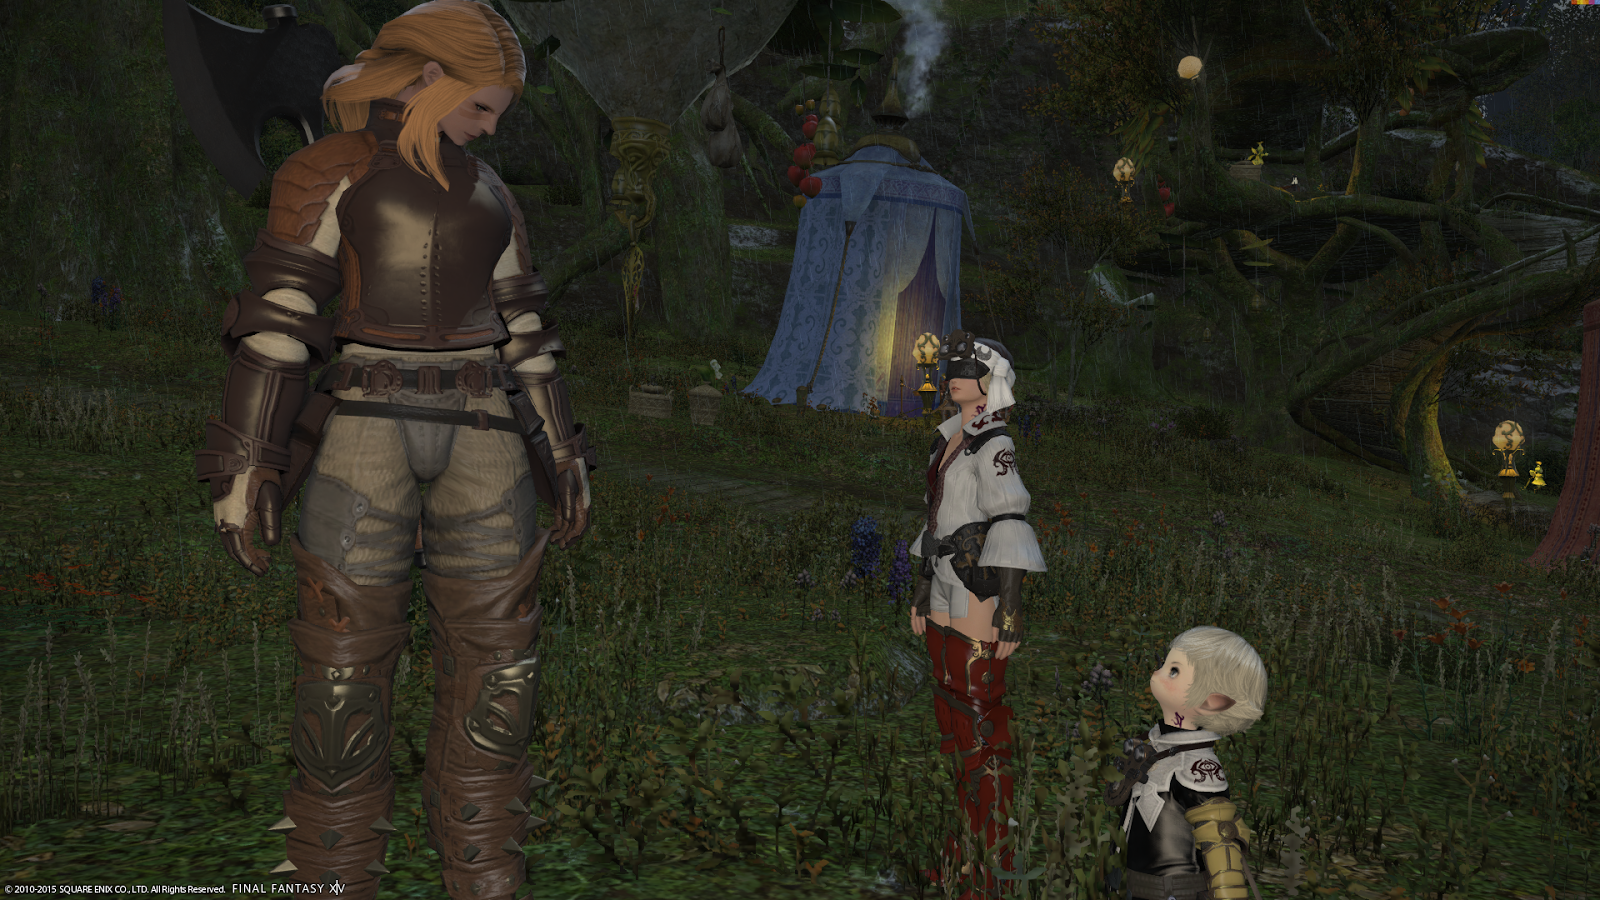 ffxiv steeds and how to get them